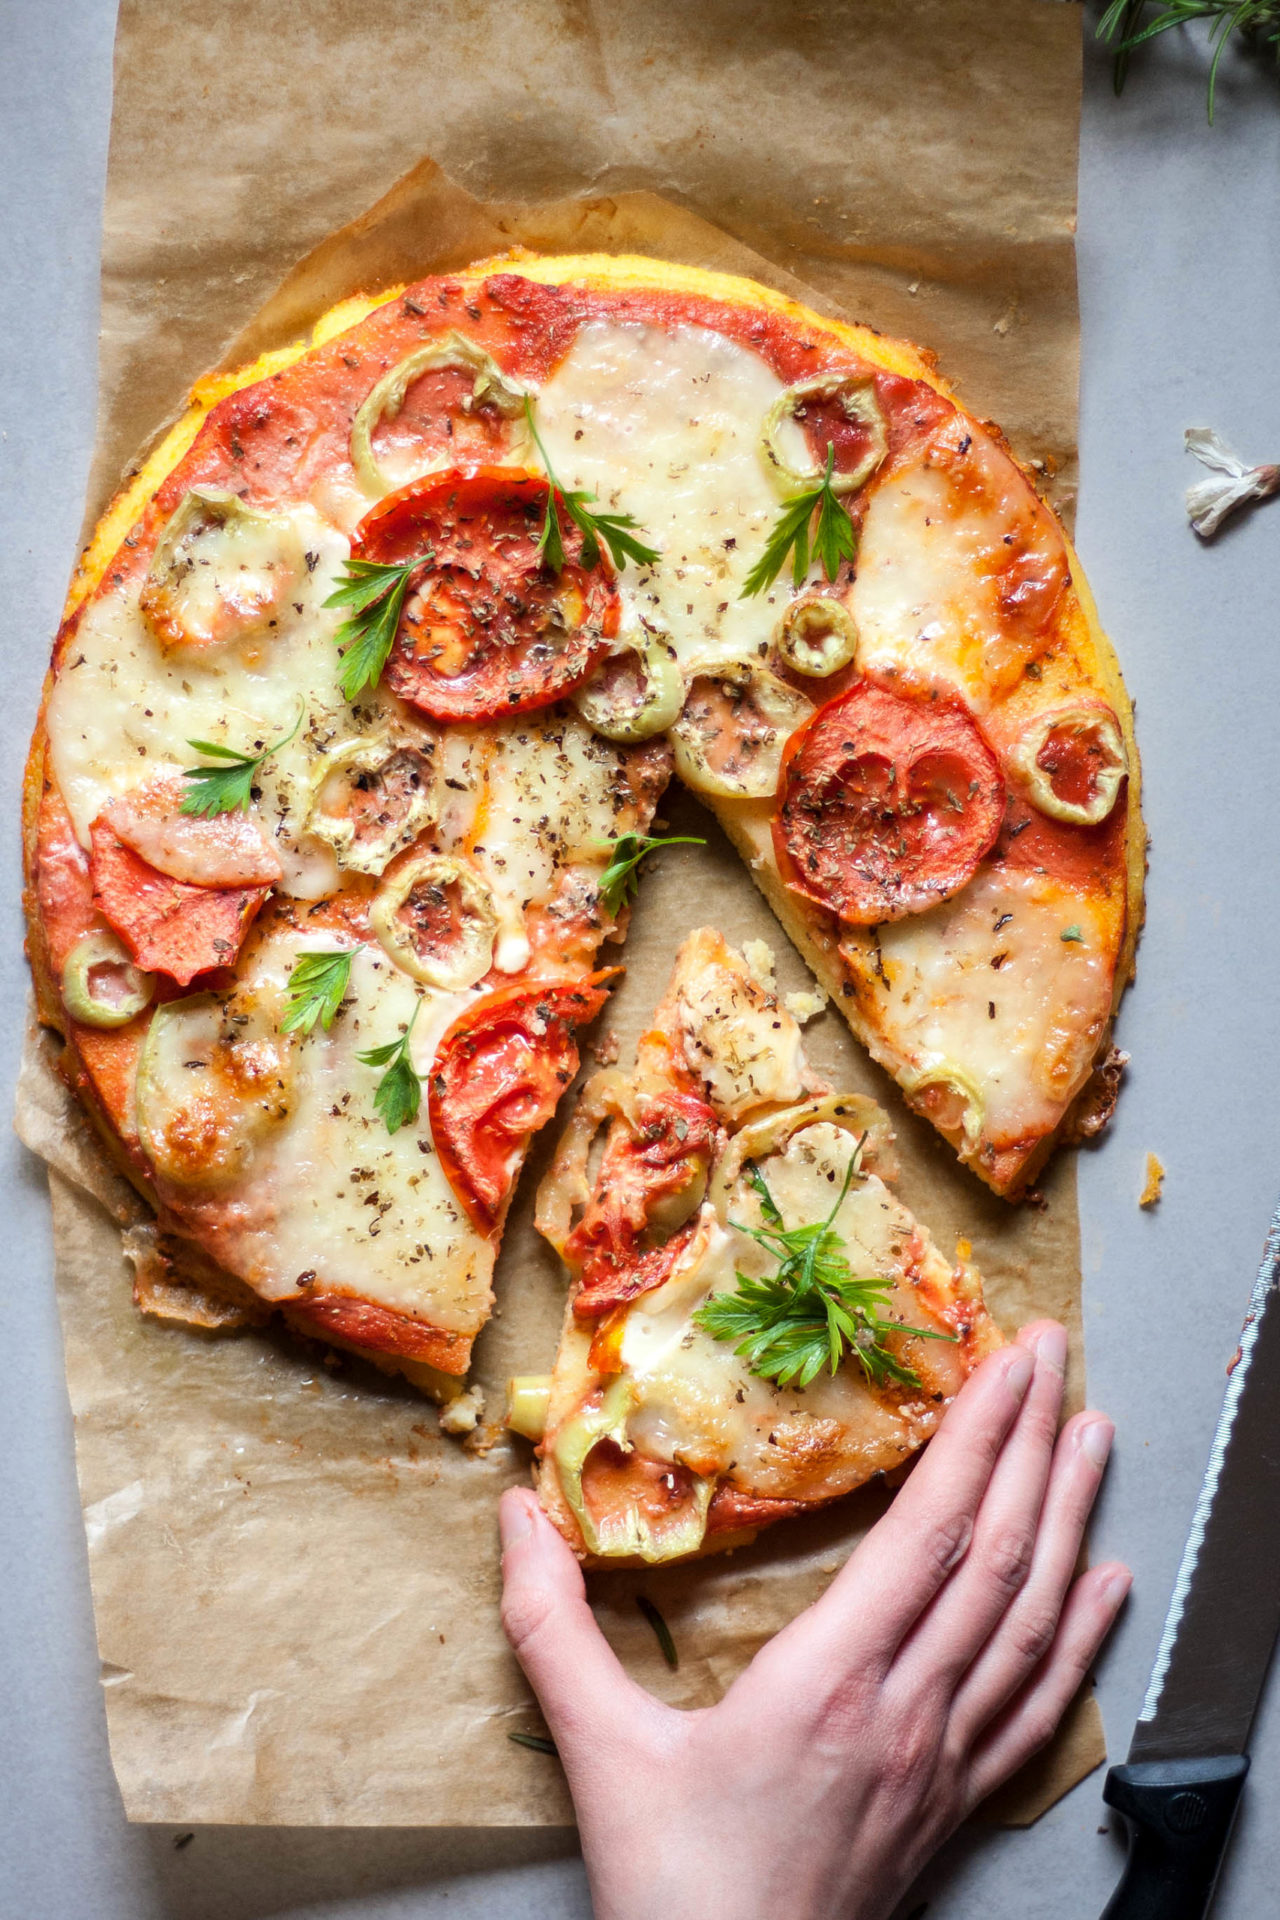 This Polenta Pizza is simple to make,  naturally gluten-free and low FODMAP. It is made from 4 simple ingredients and takes only 30min to make.